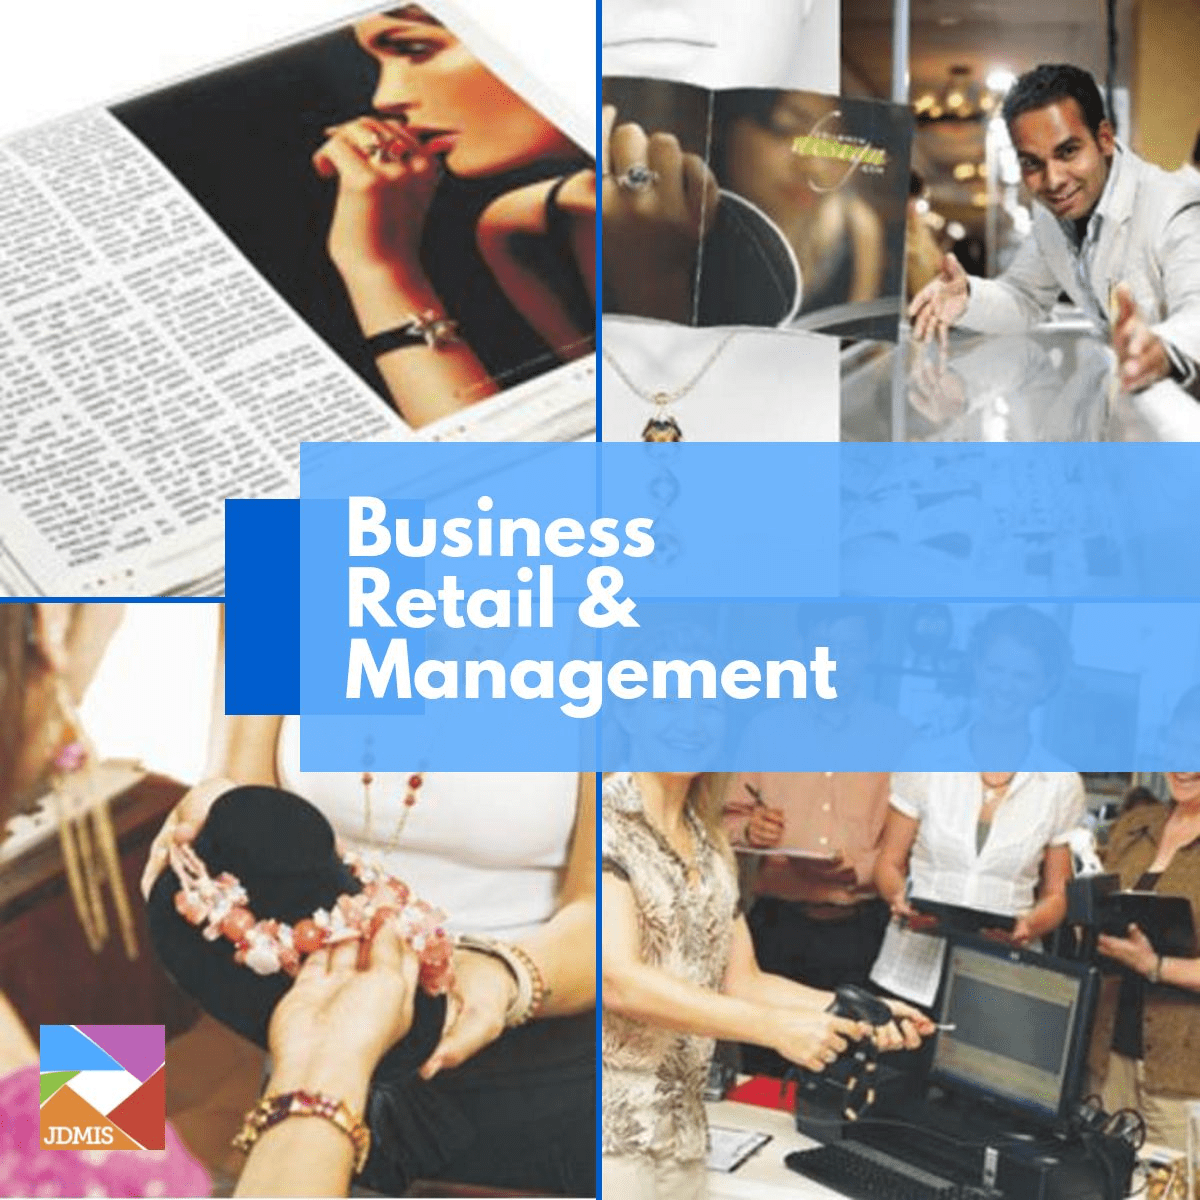 Build your jewellery business from the inception, through the launch and all the way to global expansion.